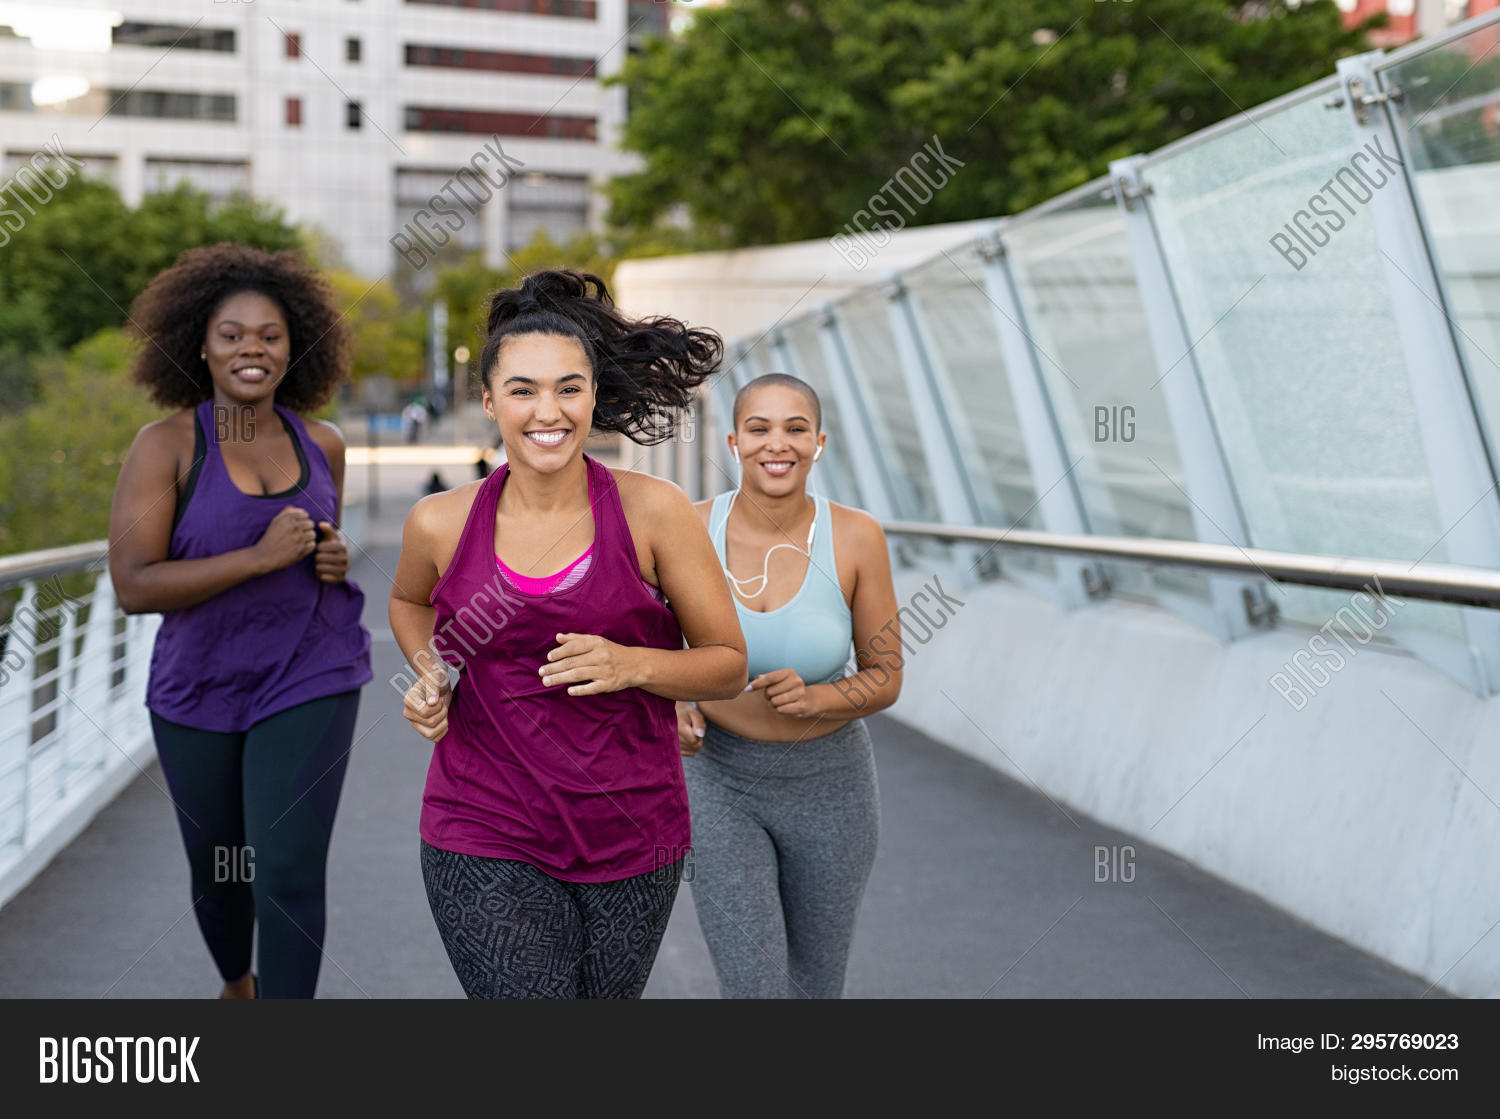 Happy young curvy women jogging together on city bridge. Healthy girls friends running on the city s